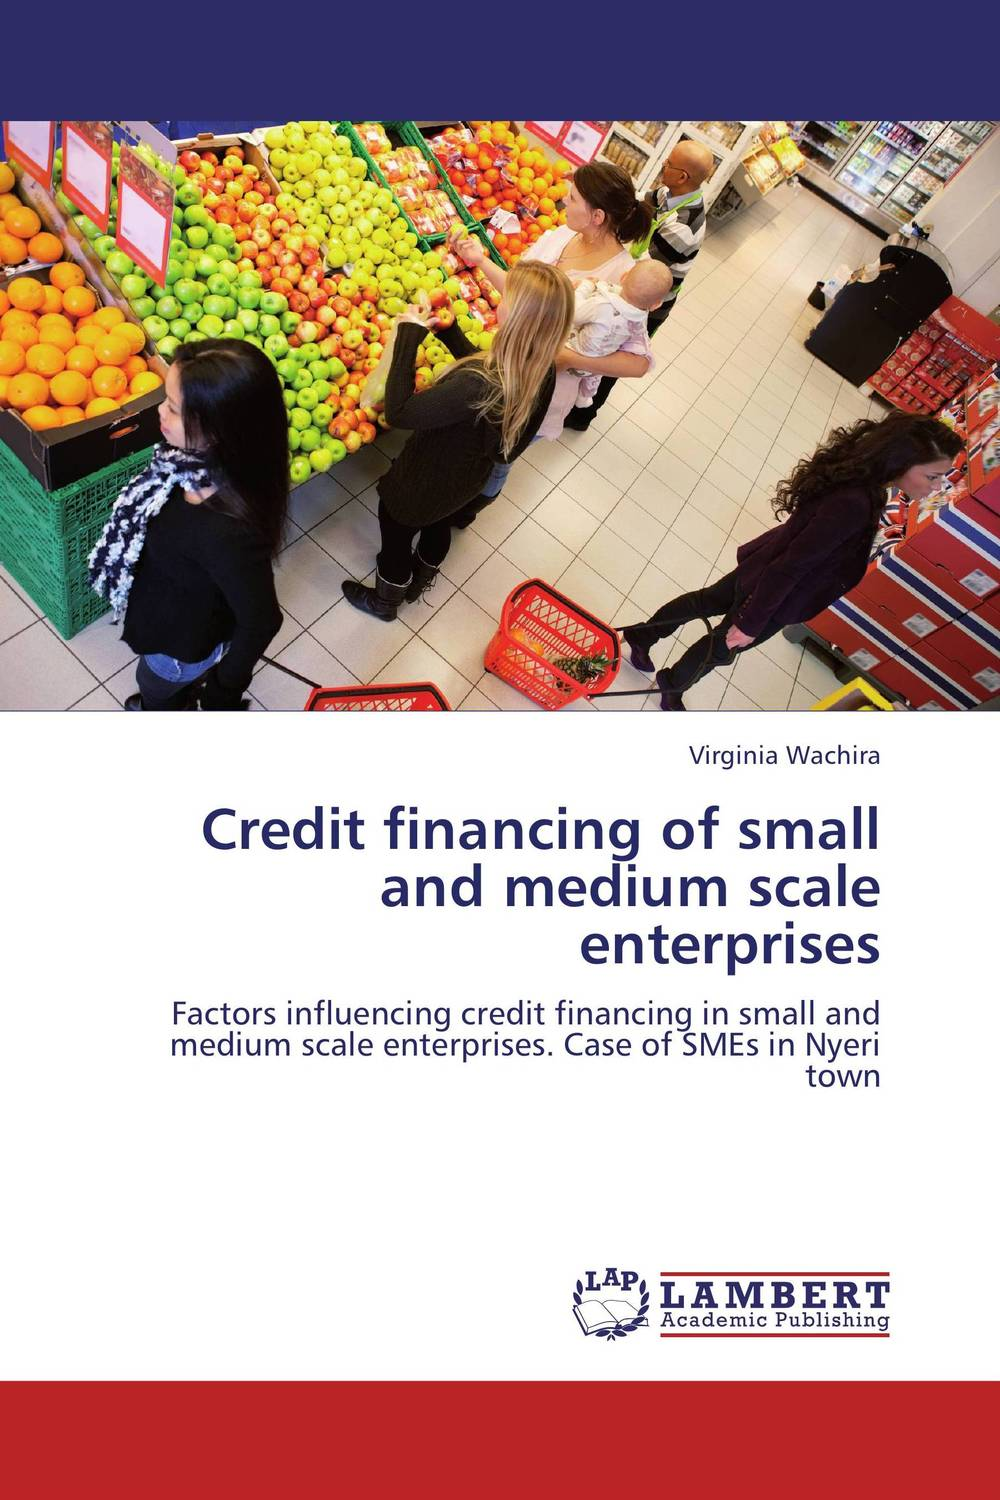 Credit financing of small and medium scale enterprises small and medium enterprises issues and challenges